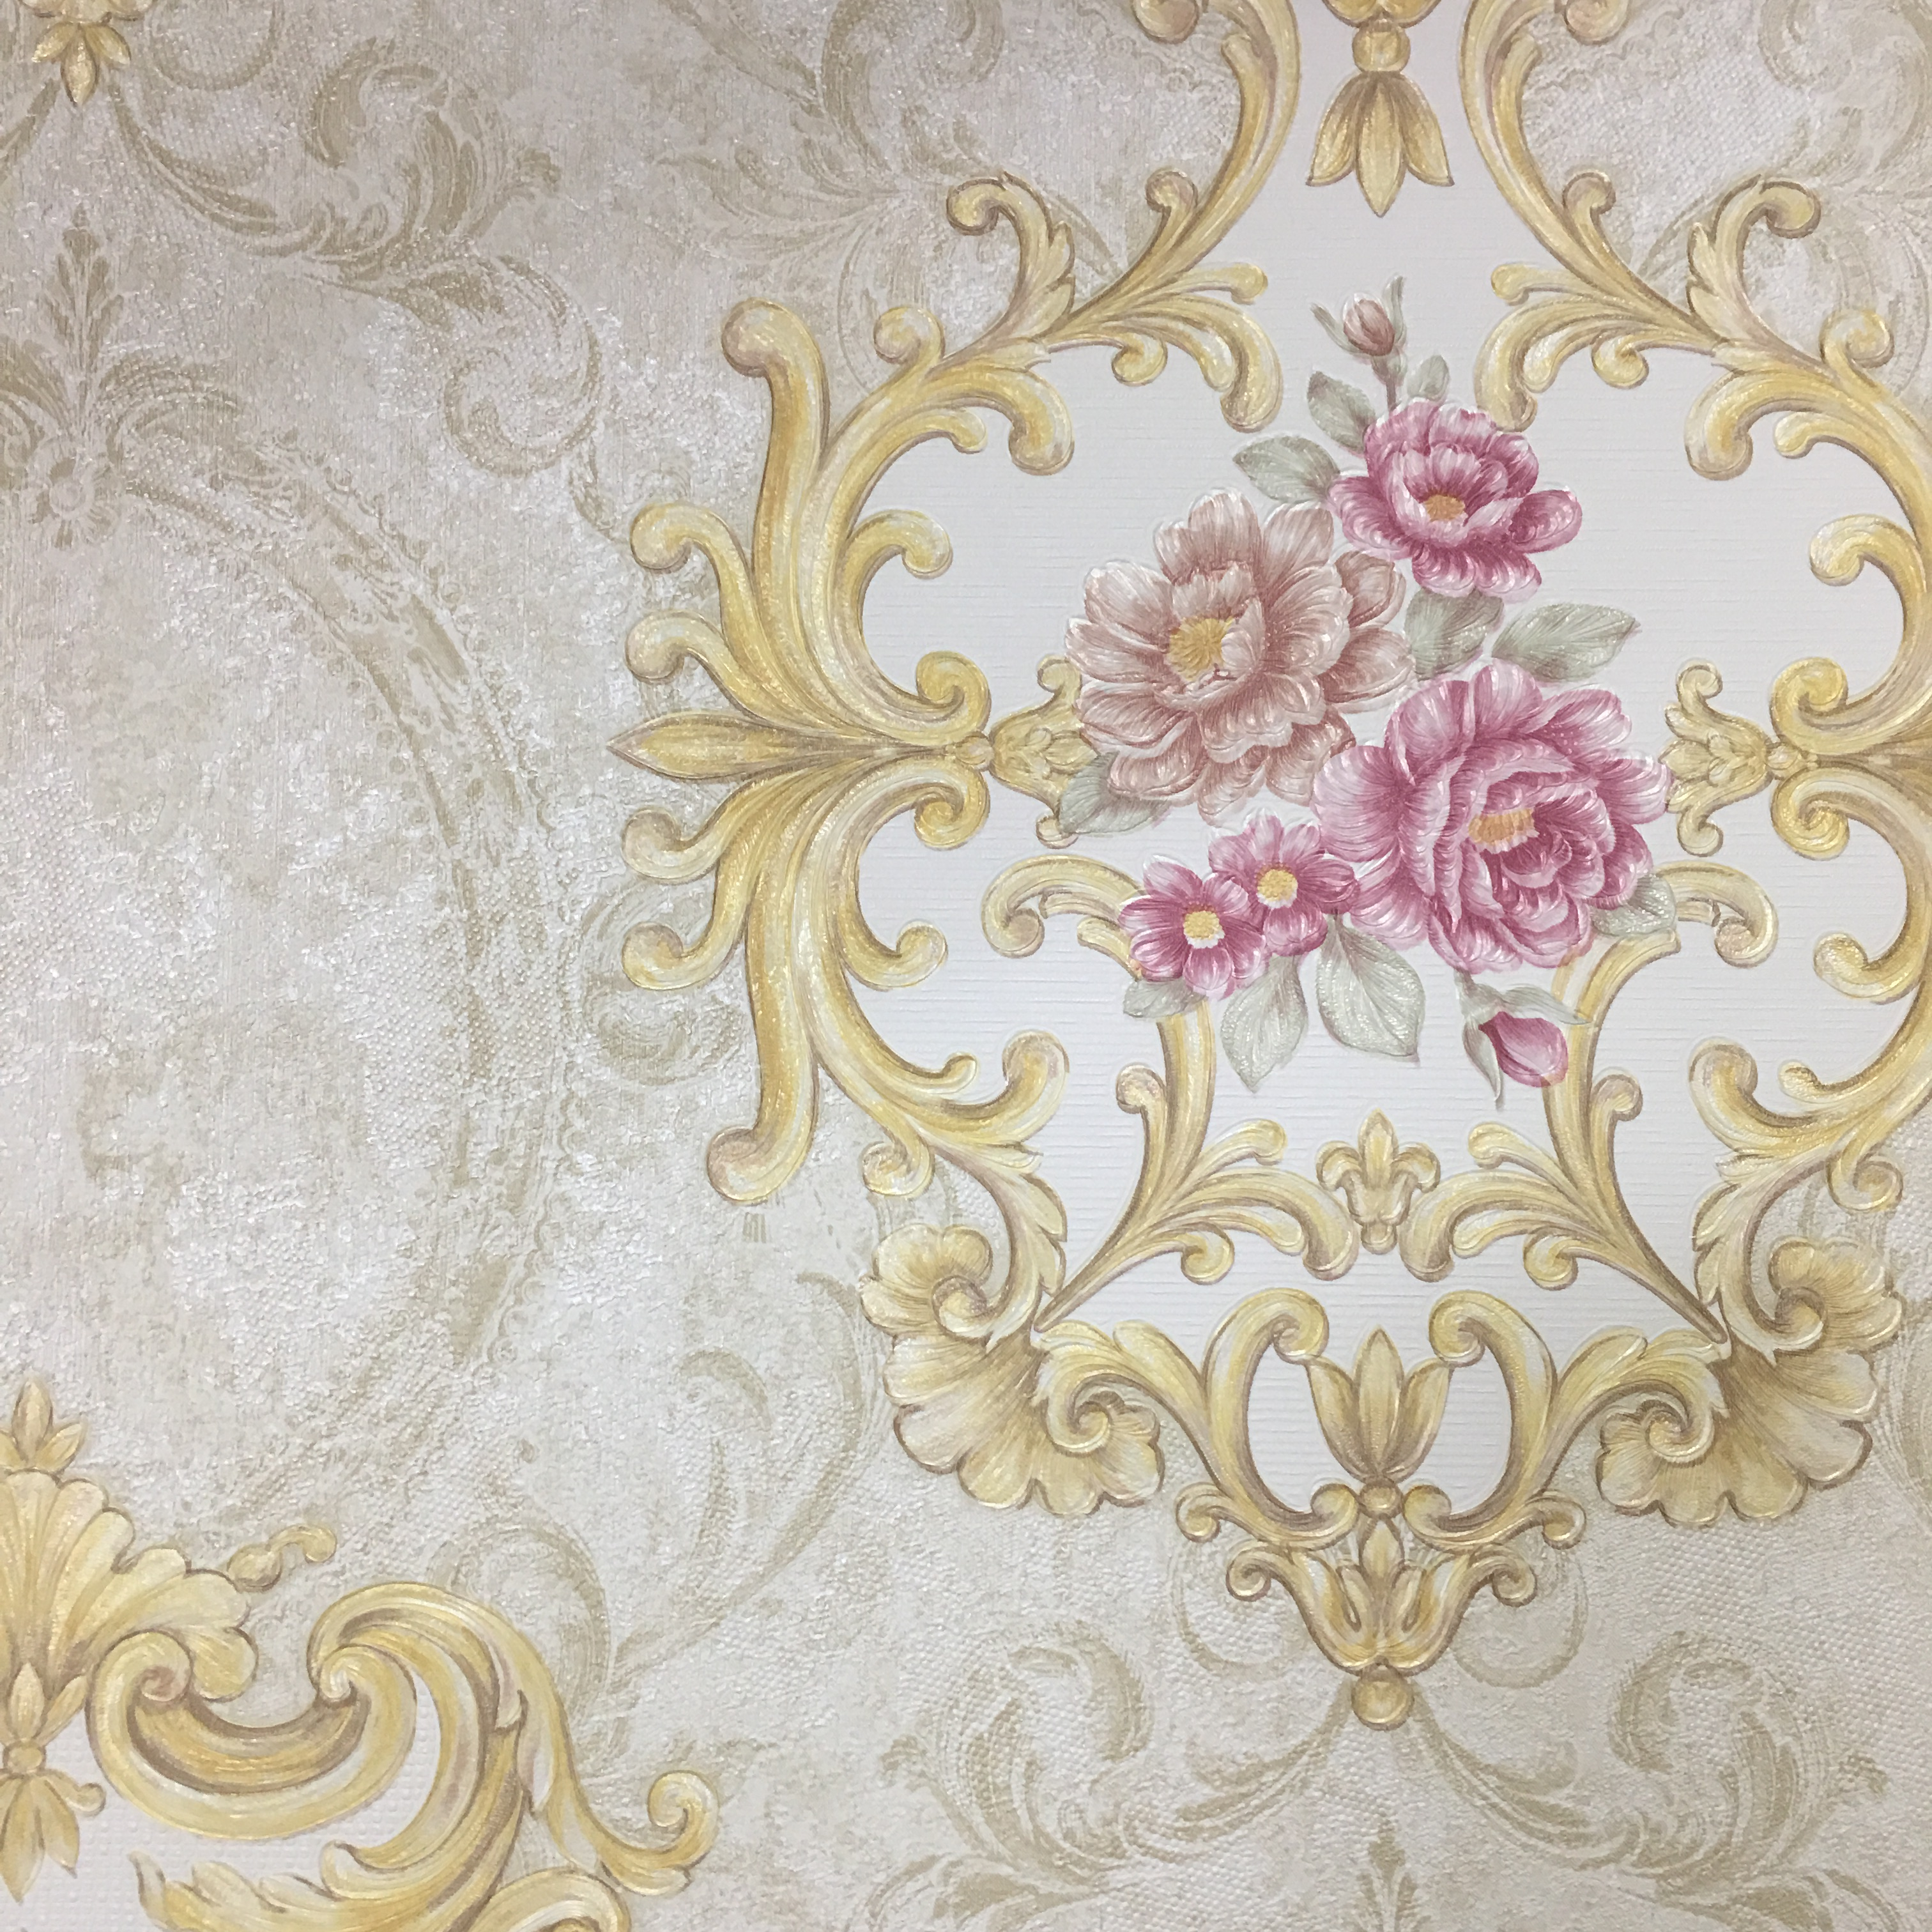 1.06 Stocklot Korea Size PVC Wallpaper Damask Design